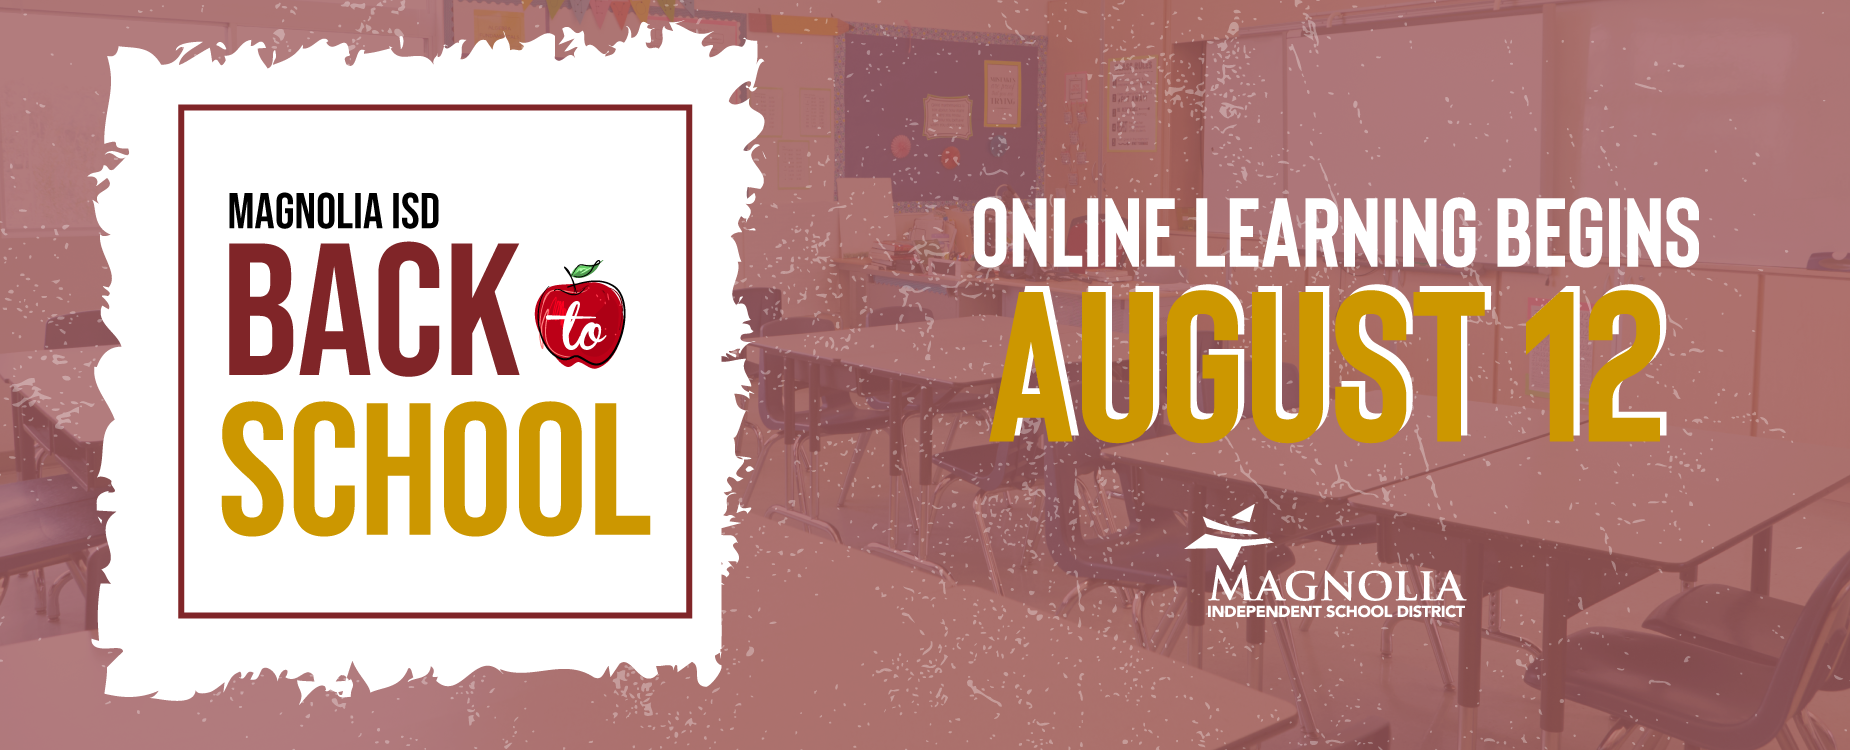 Online Learning Starts August 12